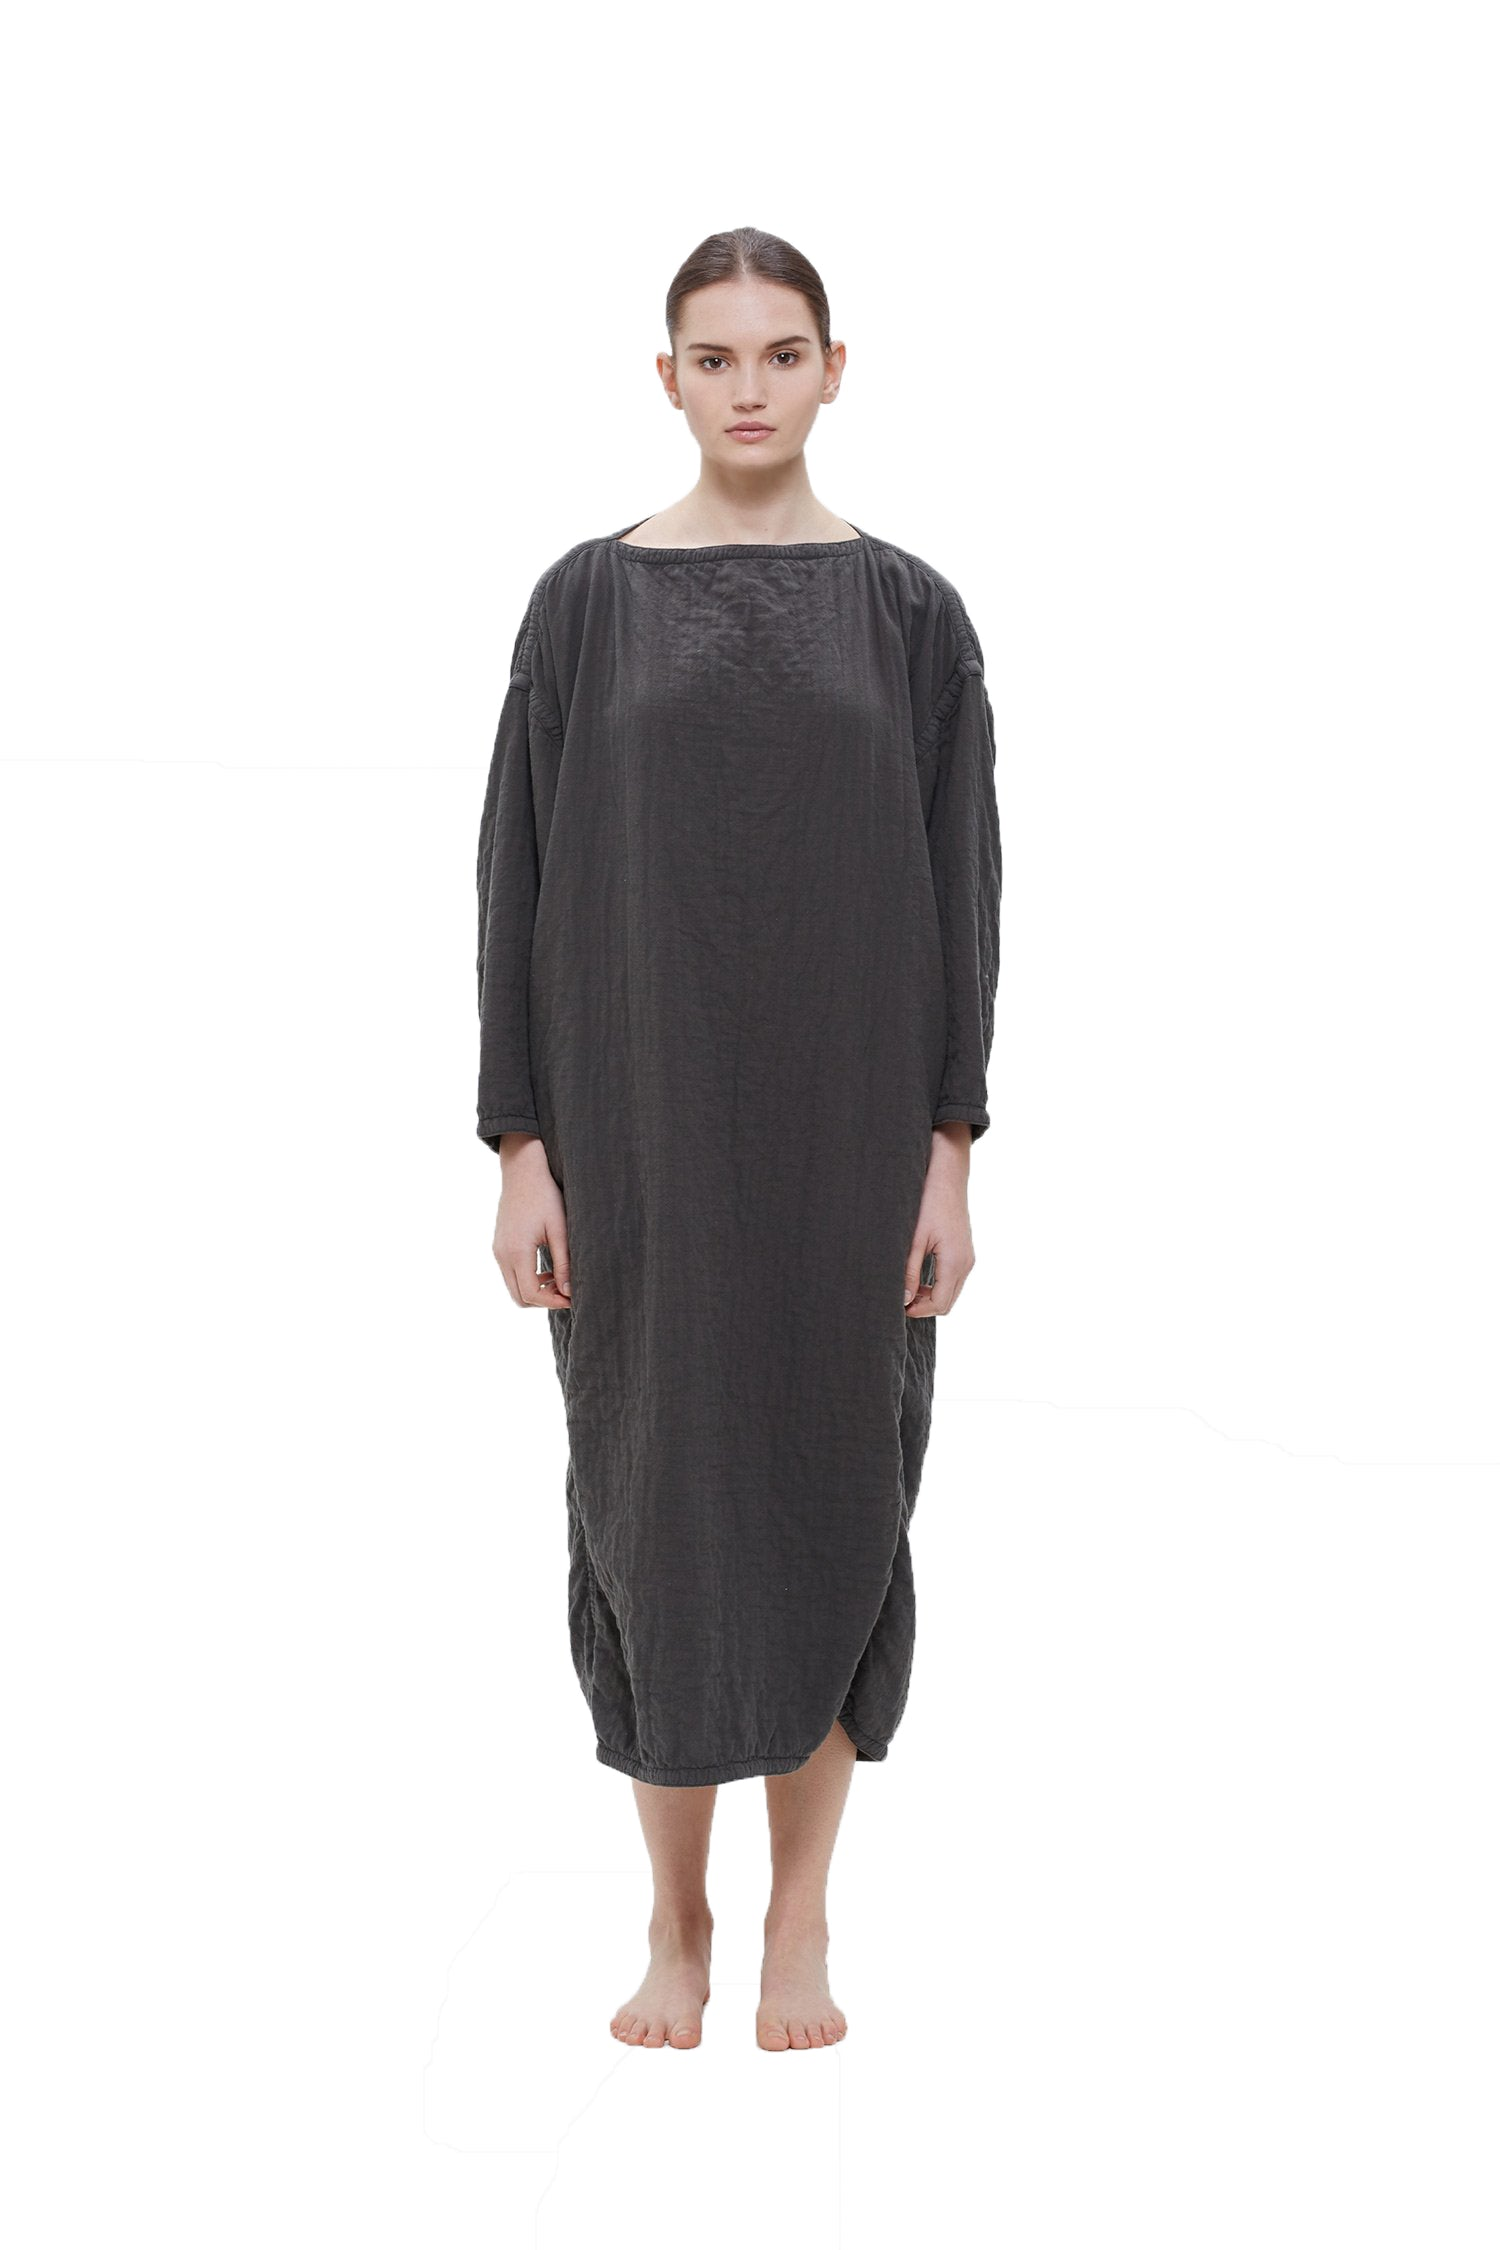 EASY DRESS - DARK GREY